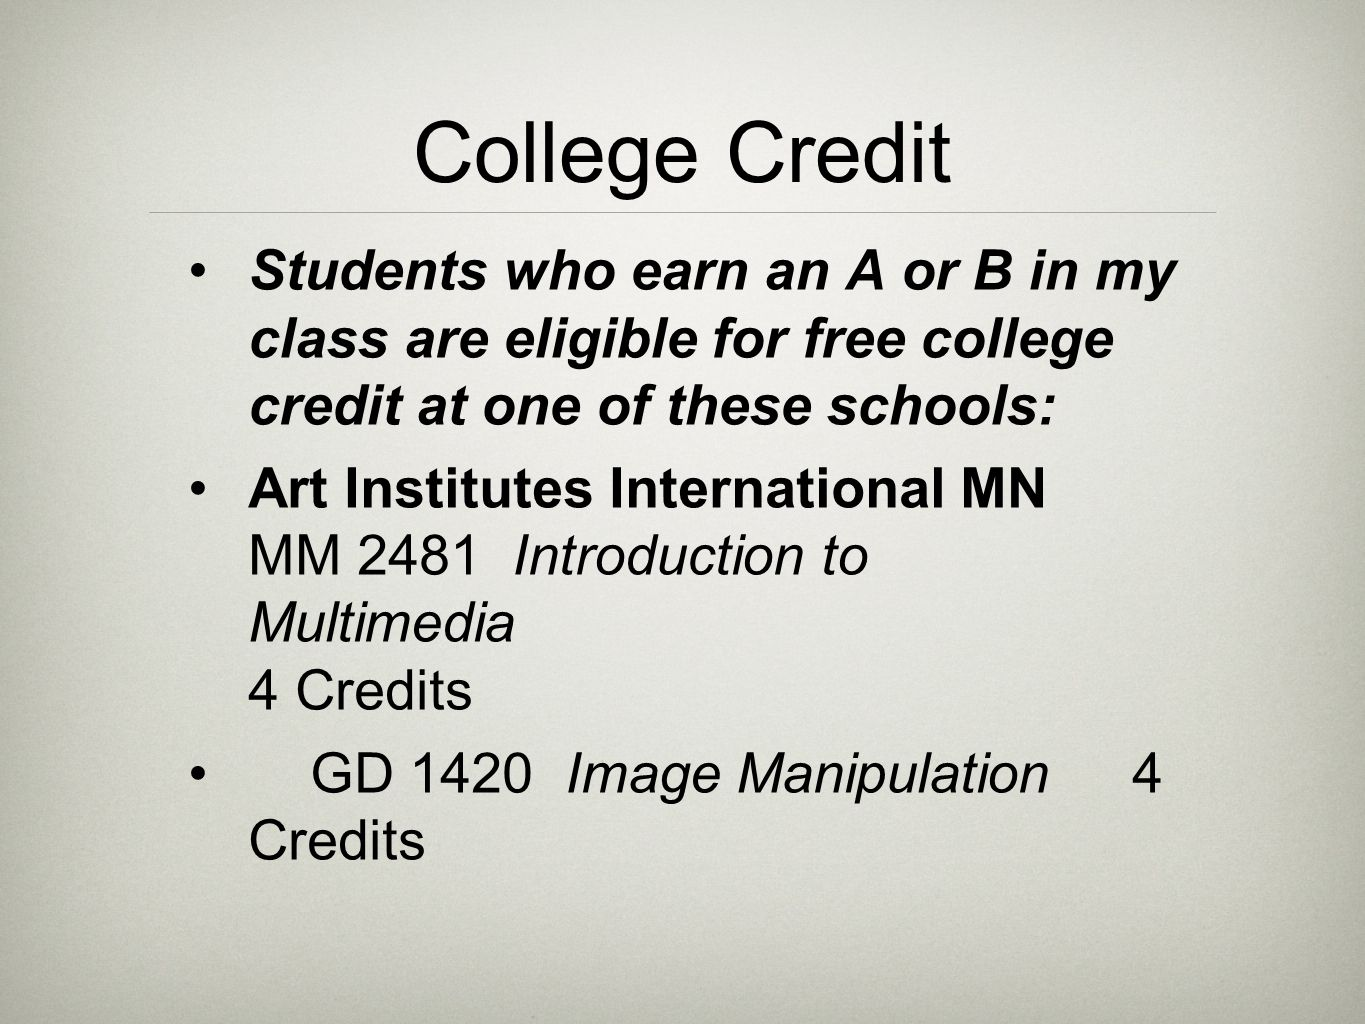 College Credit Students who earn an A or B in my class are eligible for free college credit at one of these schools: Art Institutes International MN MM 2481 Introduction to Multimedia 4 Credits GD 1420 Image Manipulation 4 Credits